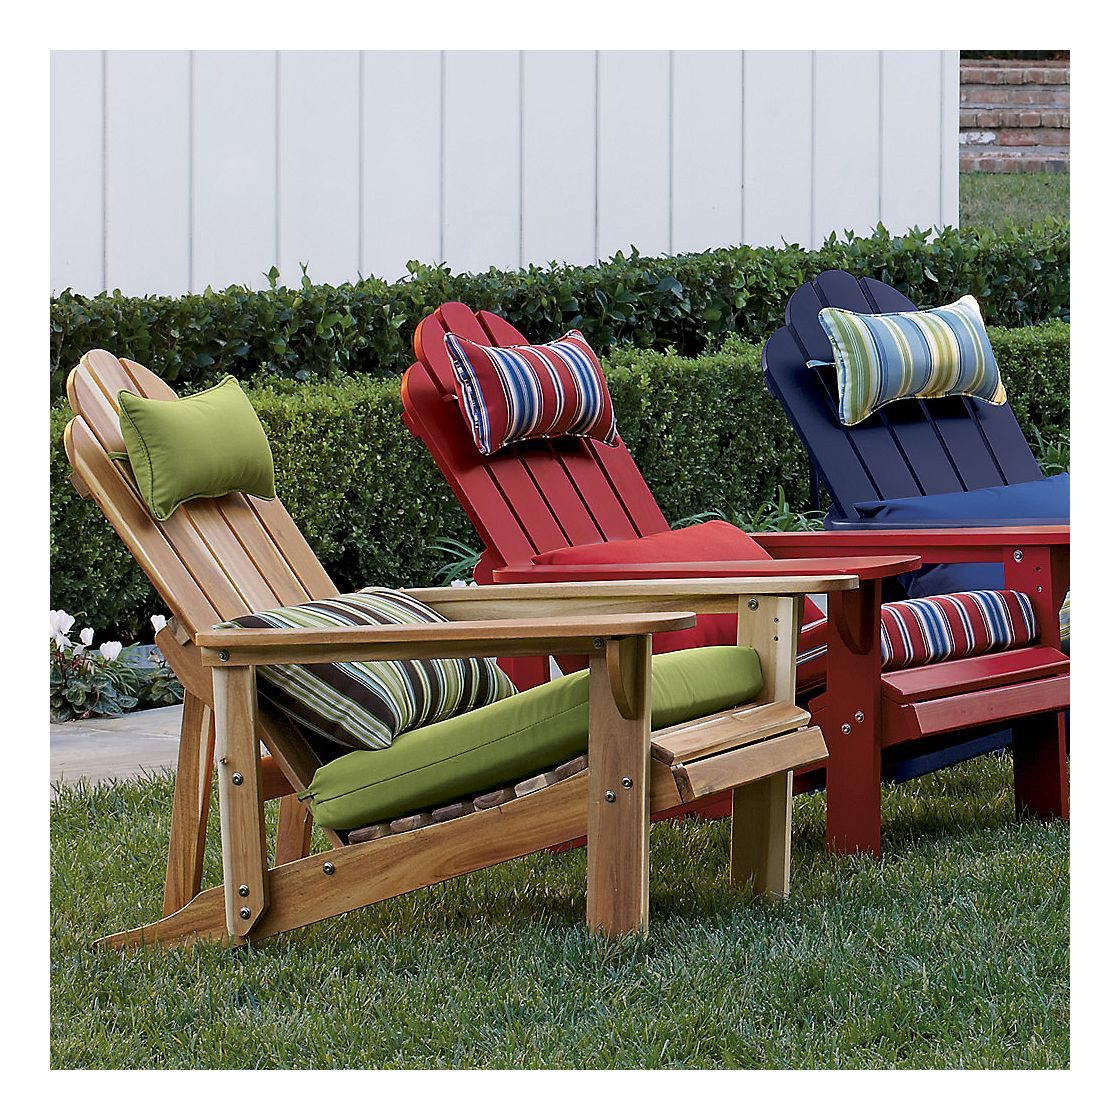 Coussin Pour Fauteuil Adirondack adirondack chair cushion | the company store | adirondack